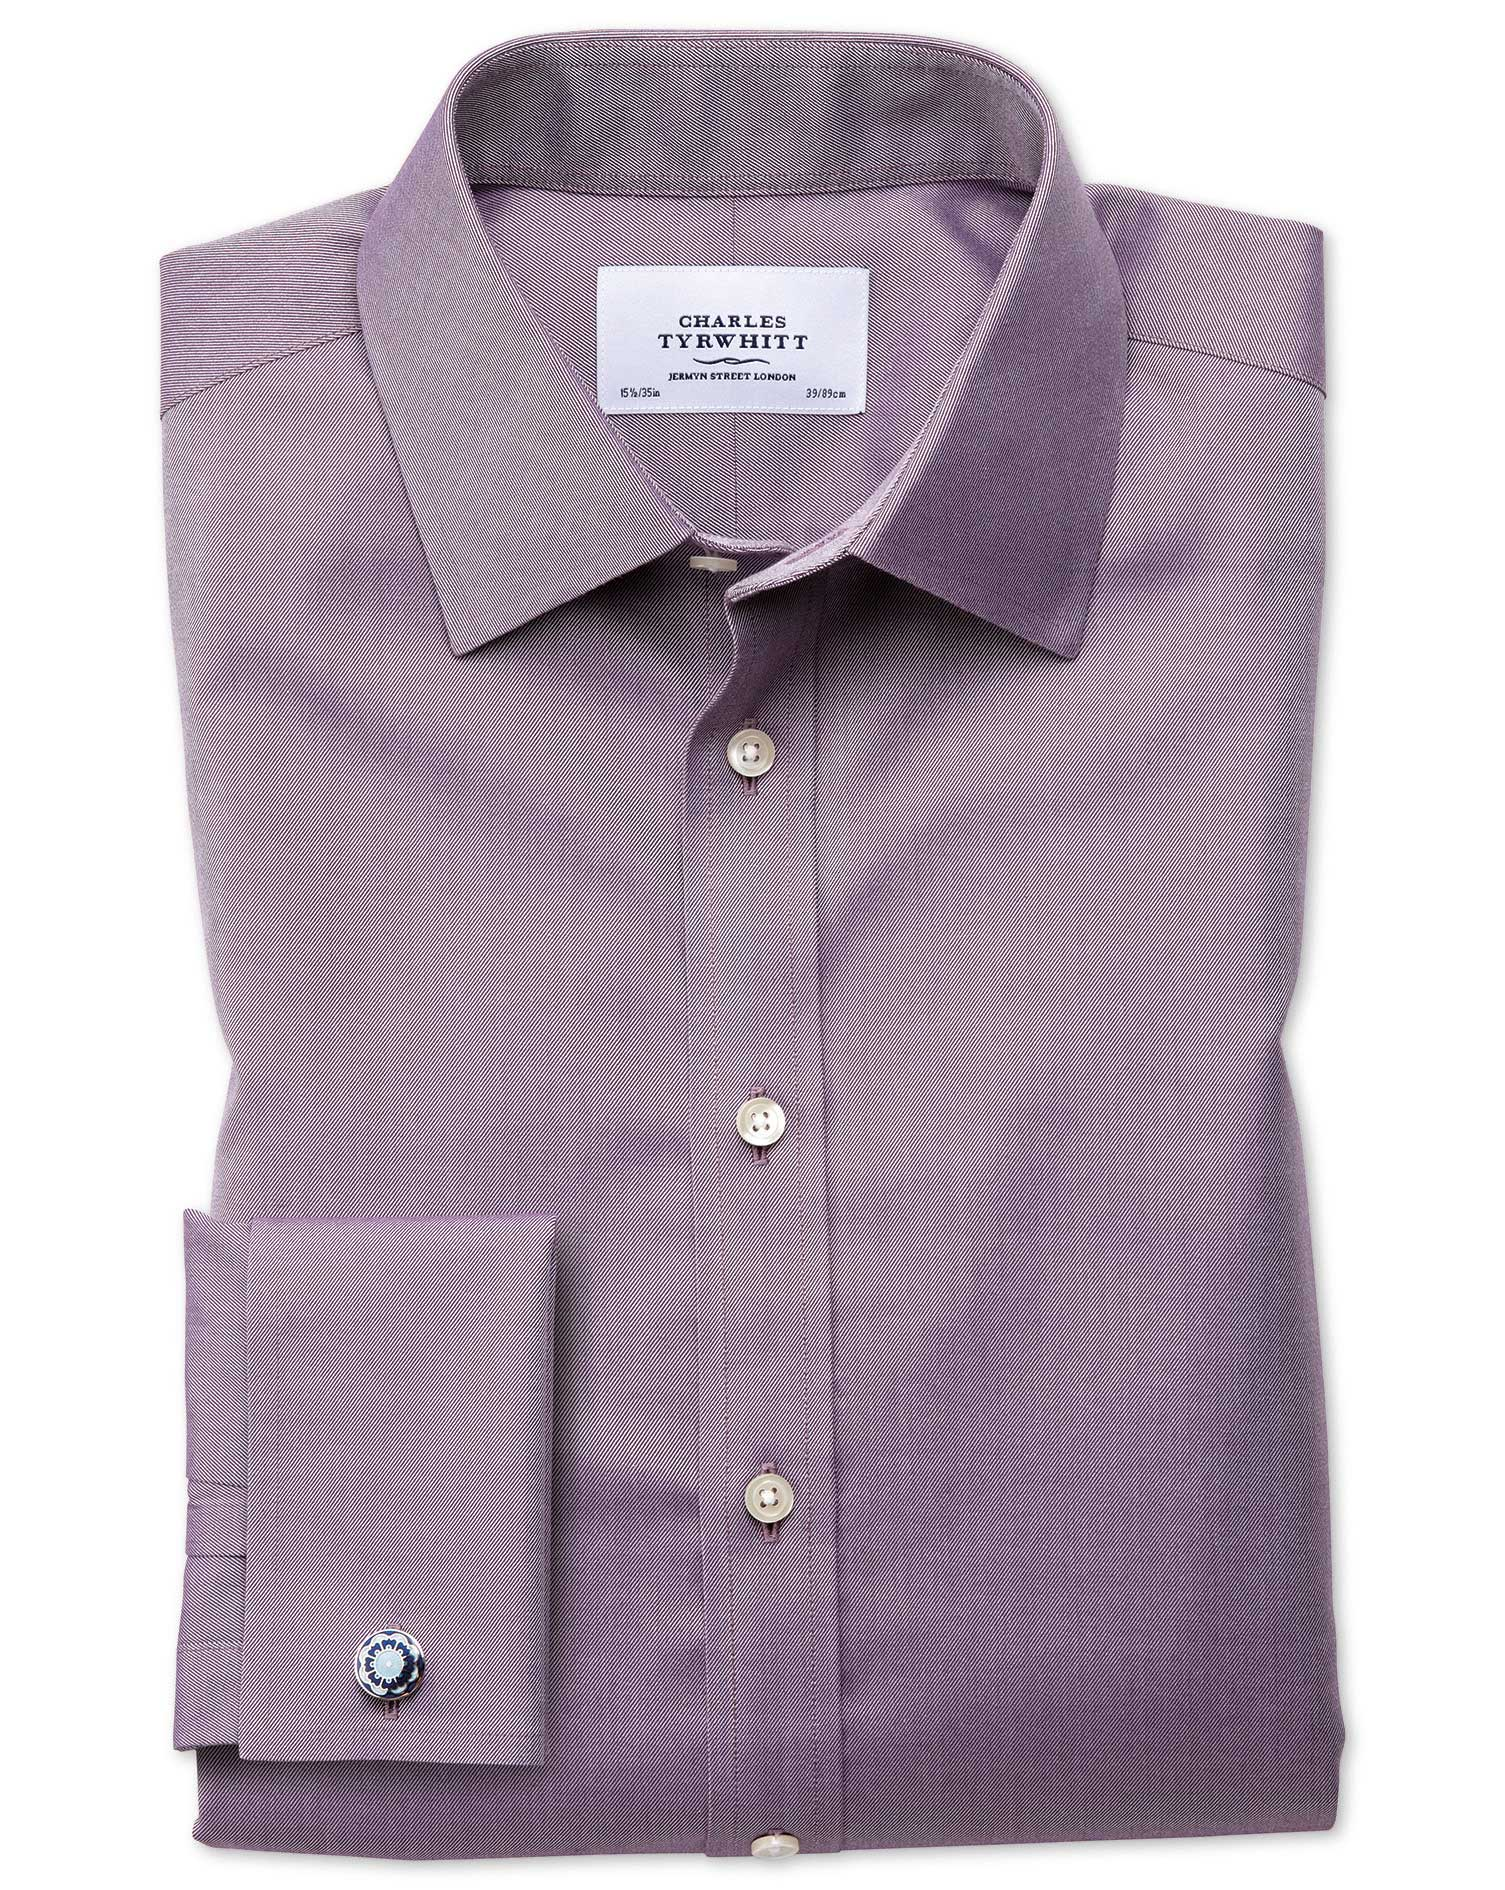 Classic Fit Non-Iron Twill Dark Purple Cotton Formal Shirt Double Cuff Size 16/34 by Charles Tyrwhit